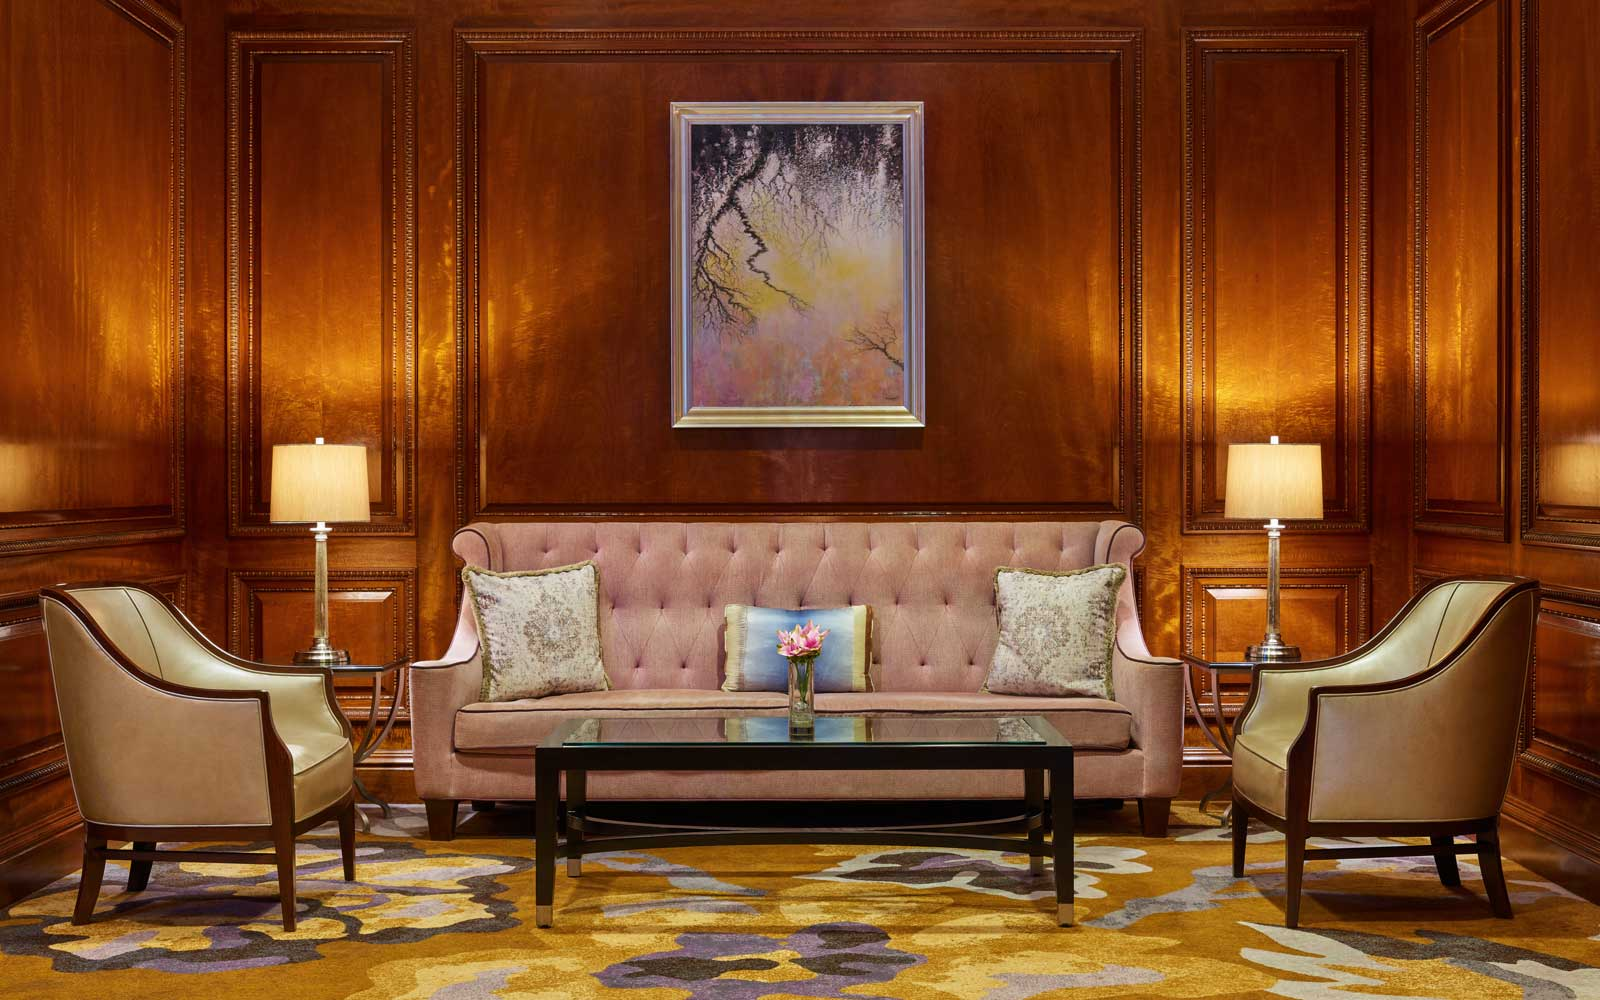 Stay at the Whitley in Atlanta for Only $139 Per Night